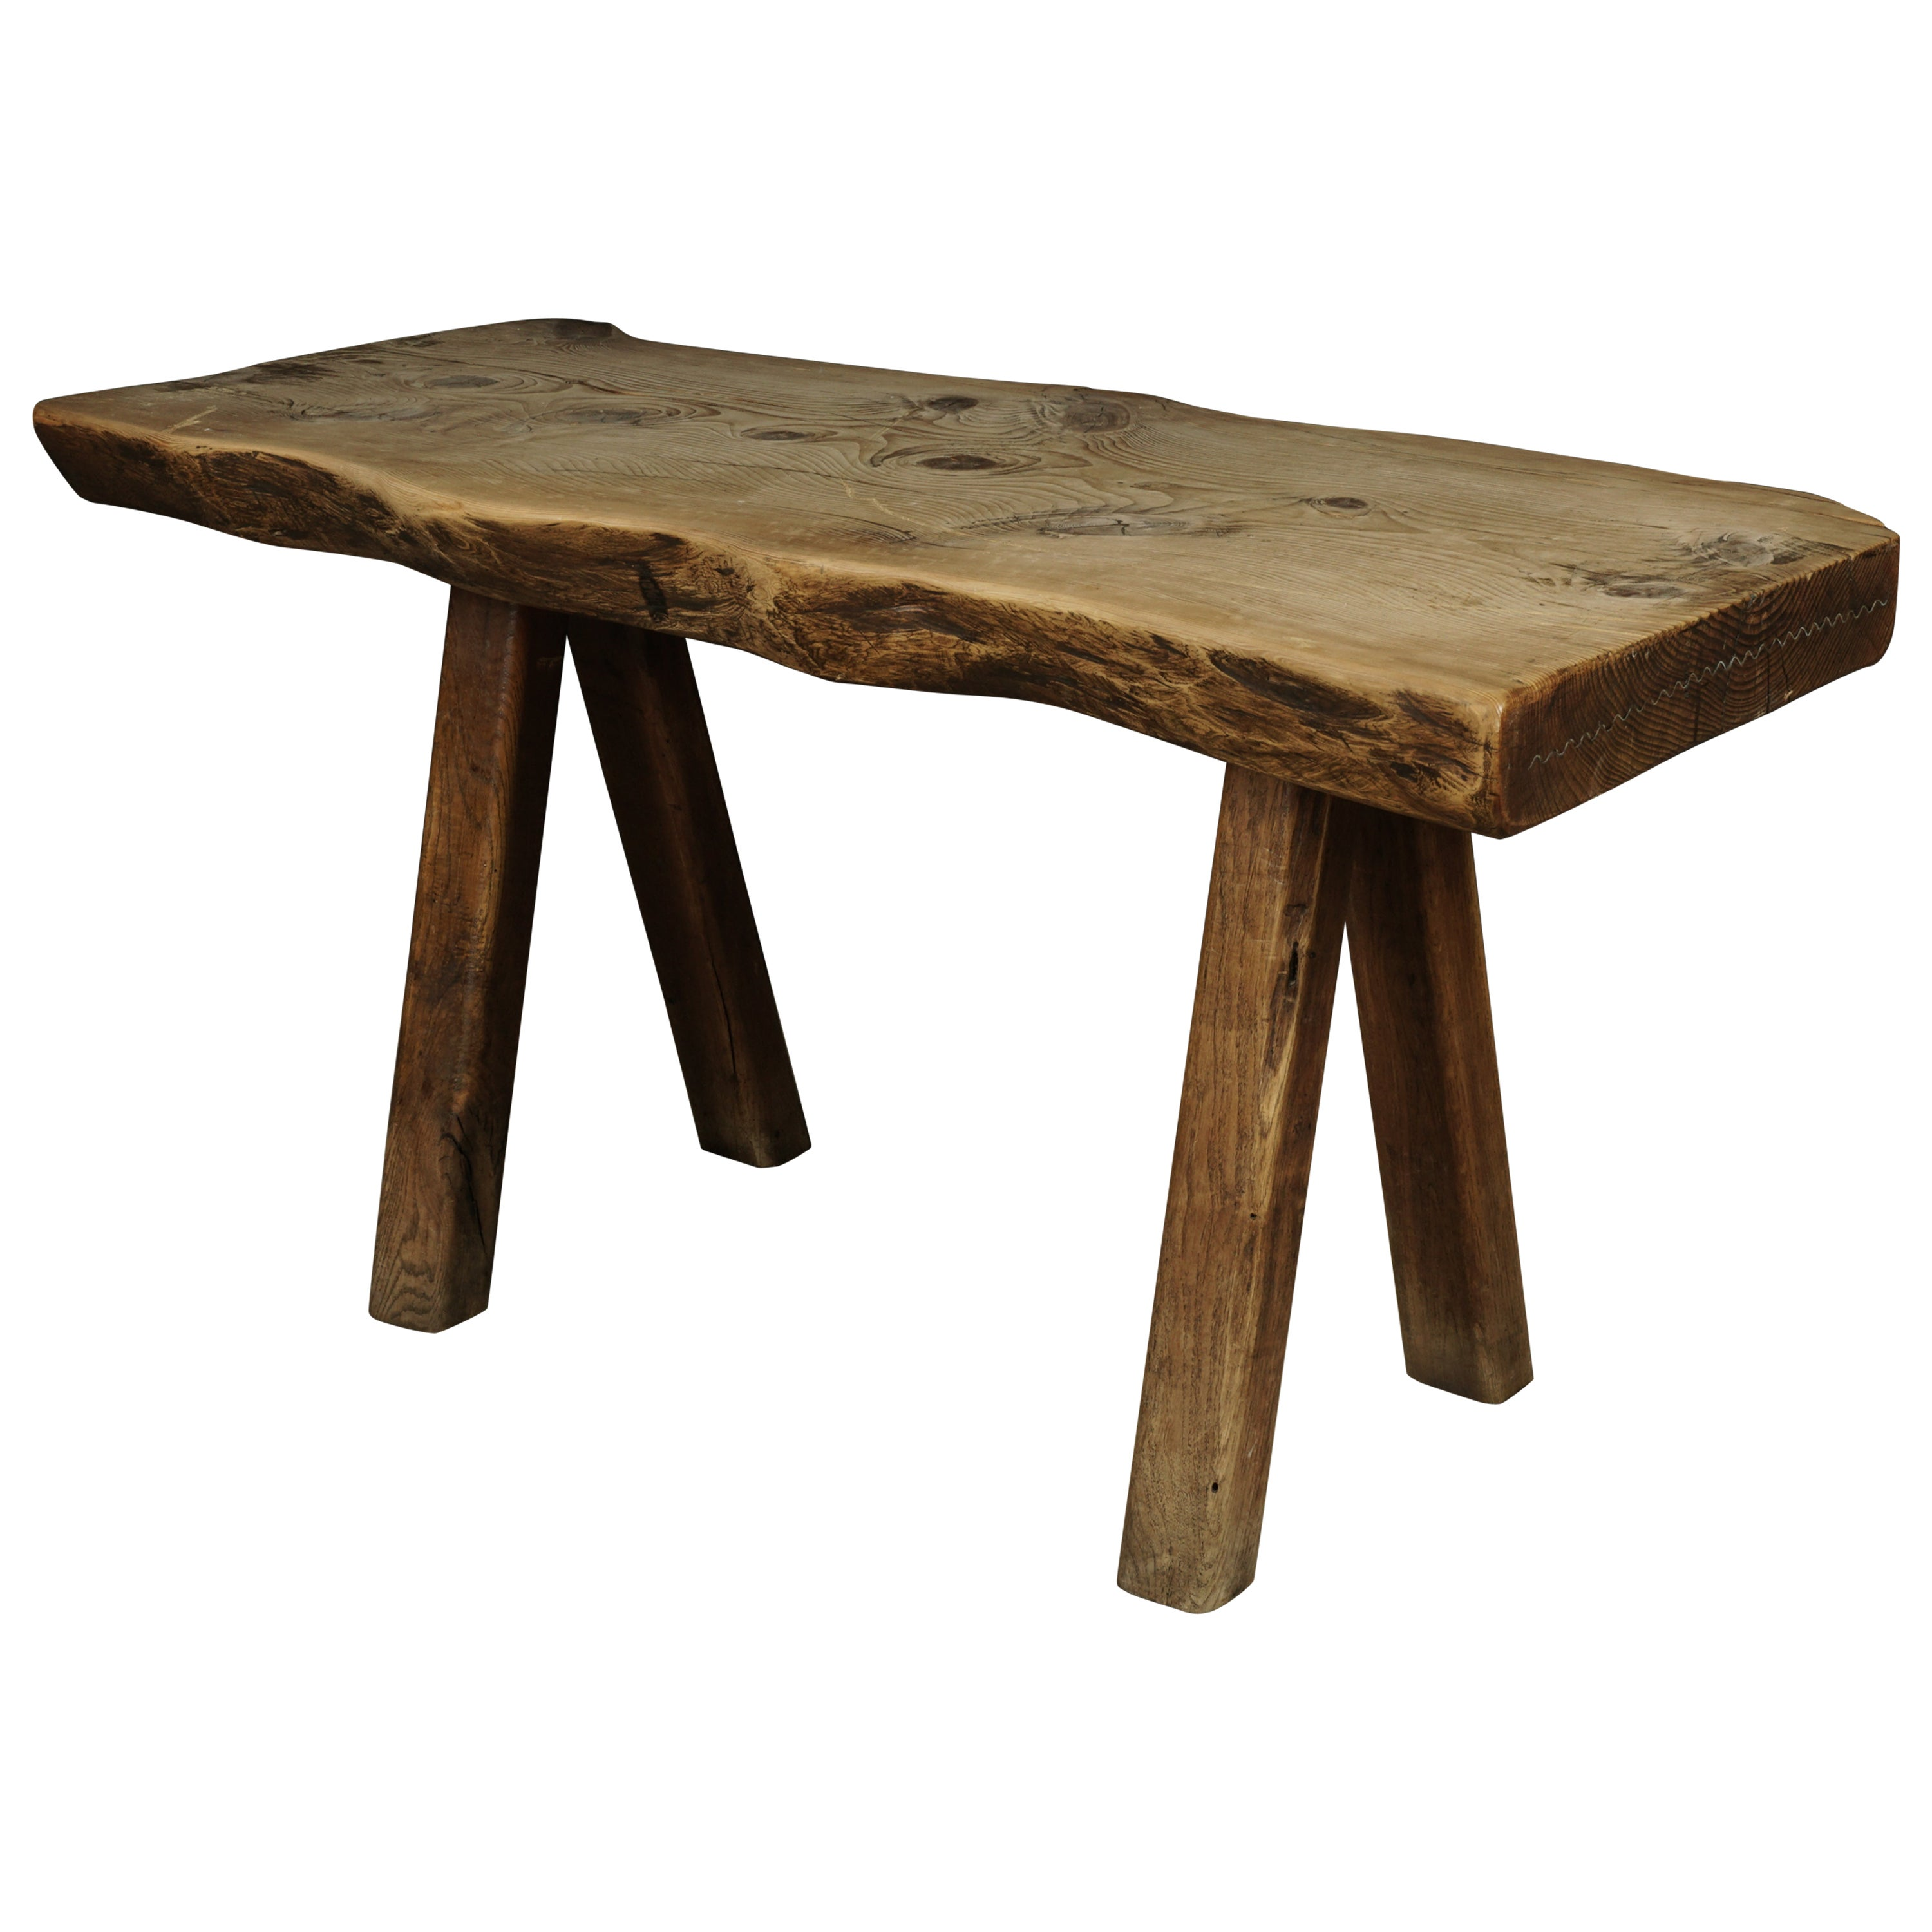 Rare Solid Pine Dining Table from a Bistro in France, circa 1950